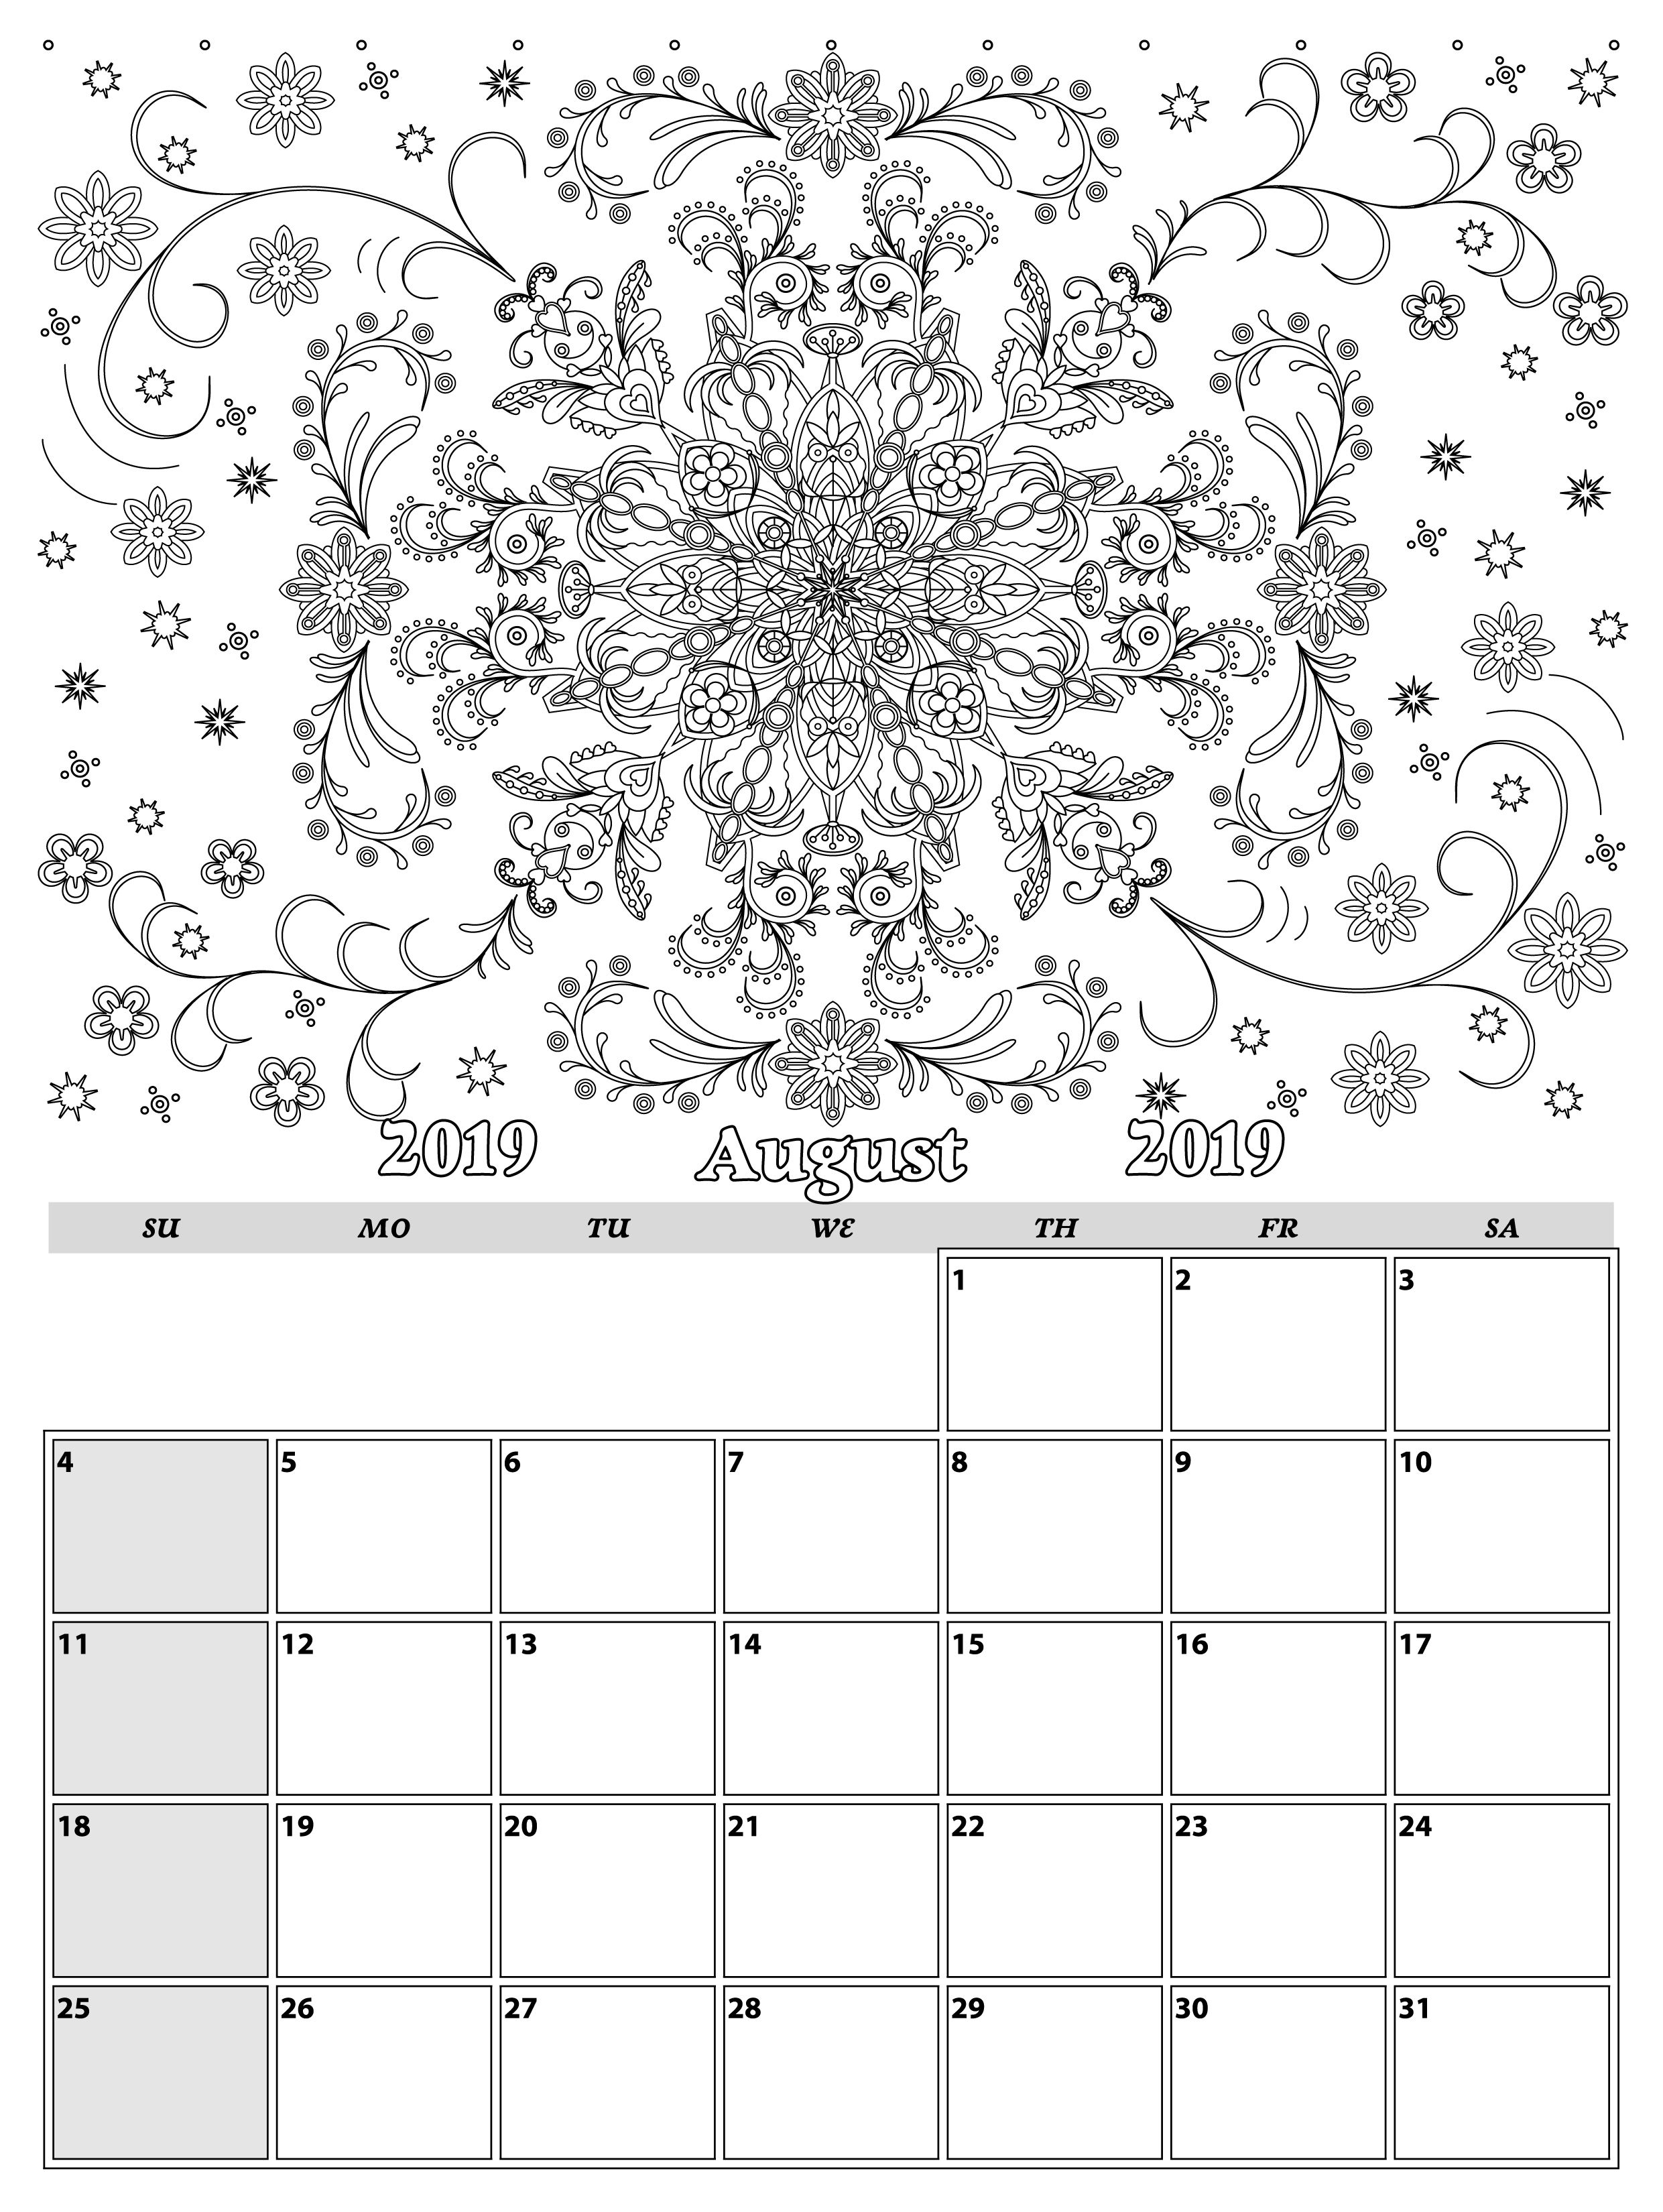 August. Monthly Planner 2019 In Doodle Style For Relax And Plan throughout Doodle Monthly Planner Printer Templates